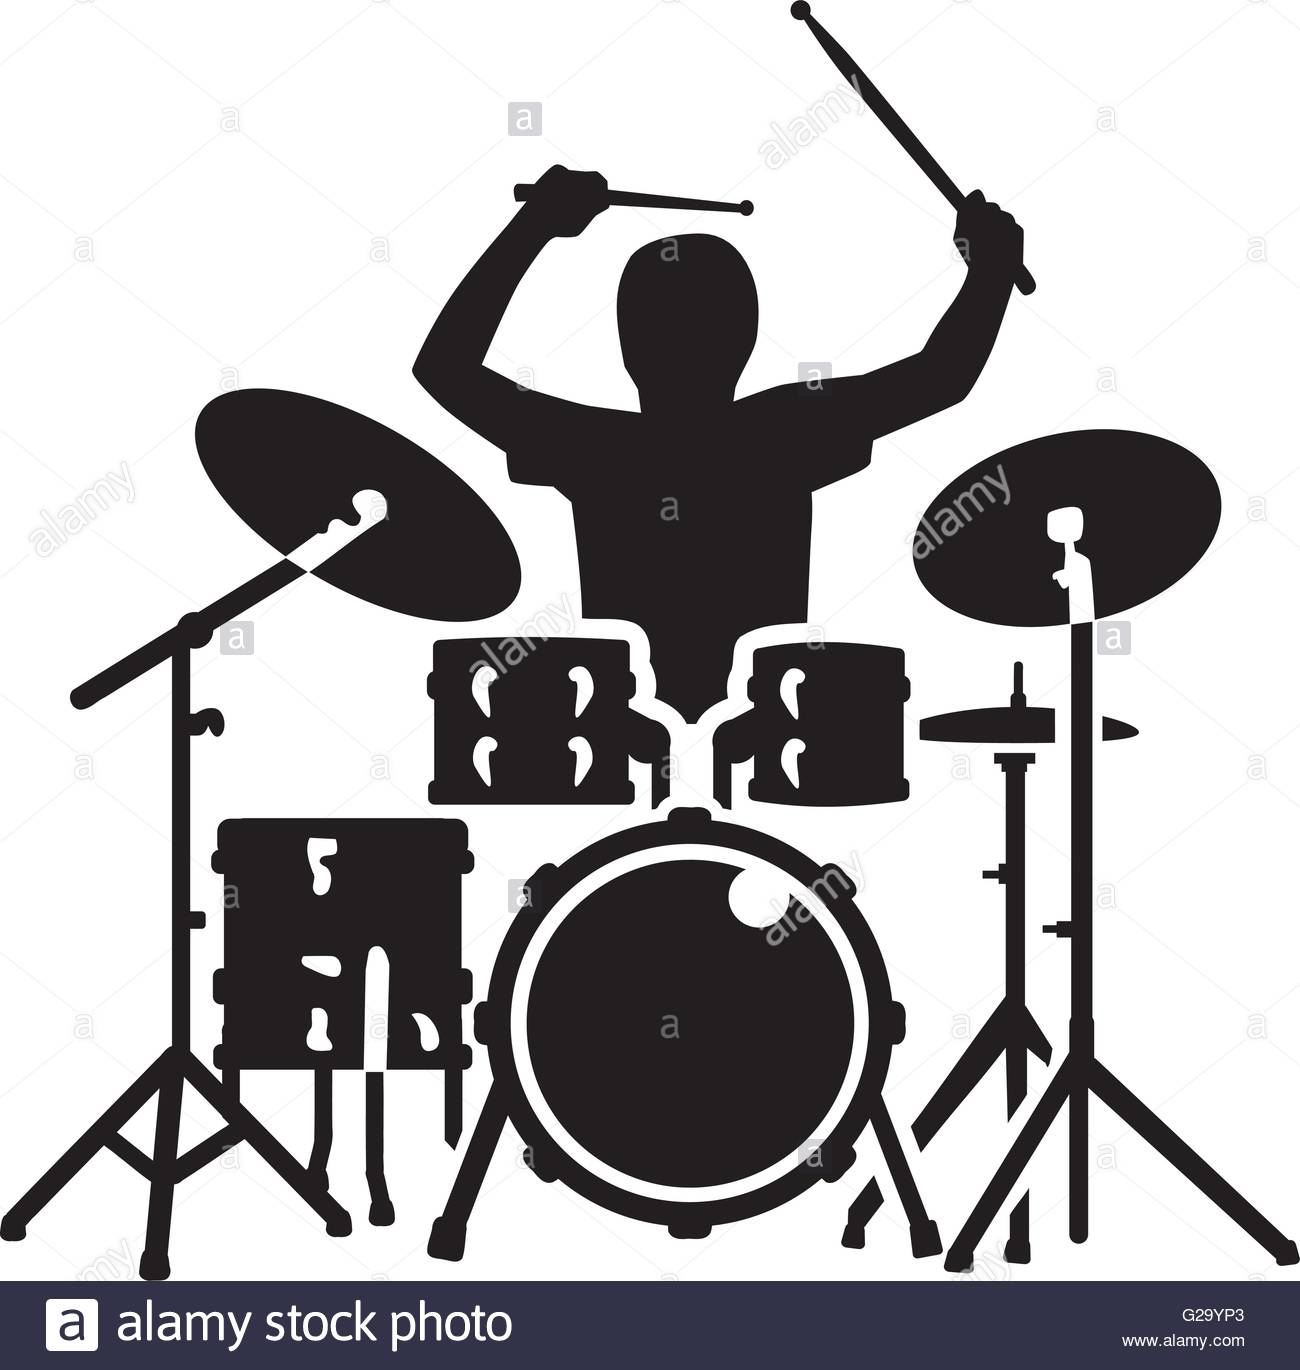 1300x1370 Drum Kit With Drummer In Action Stock Vector Art Amp Illustration